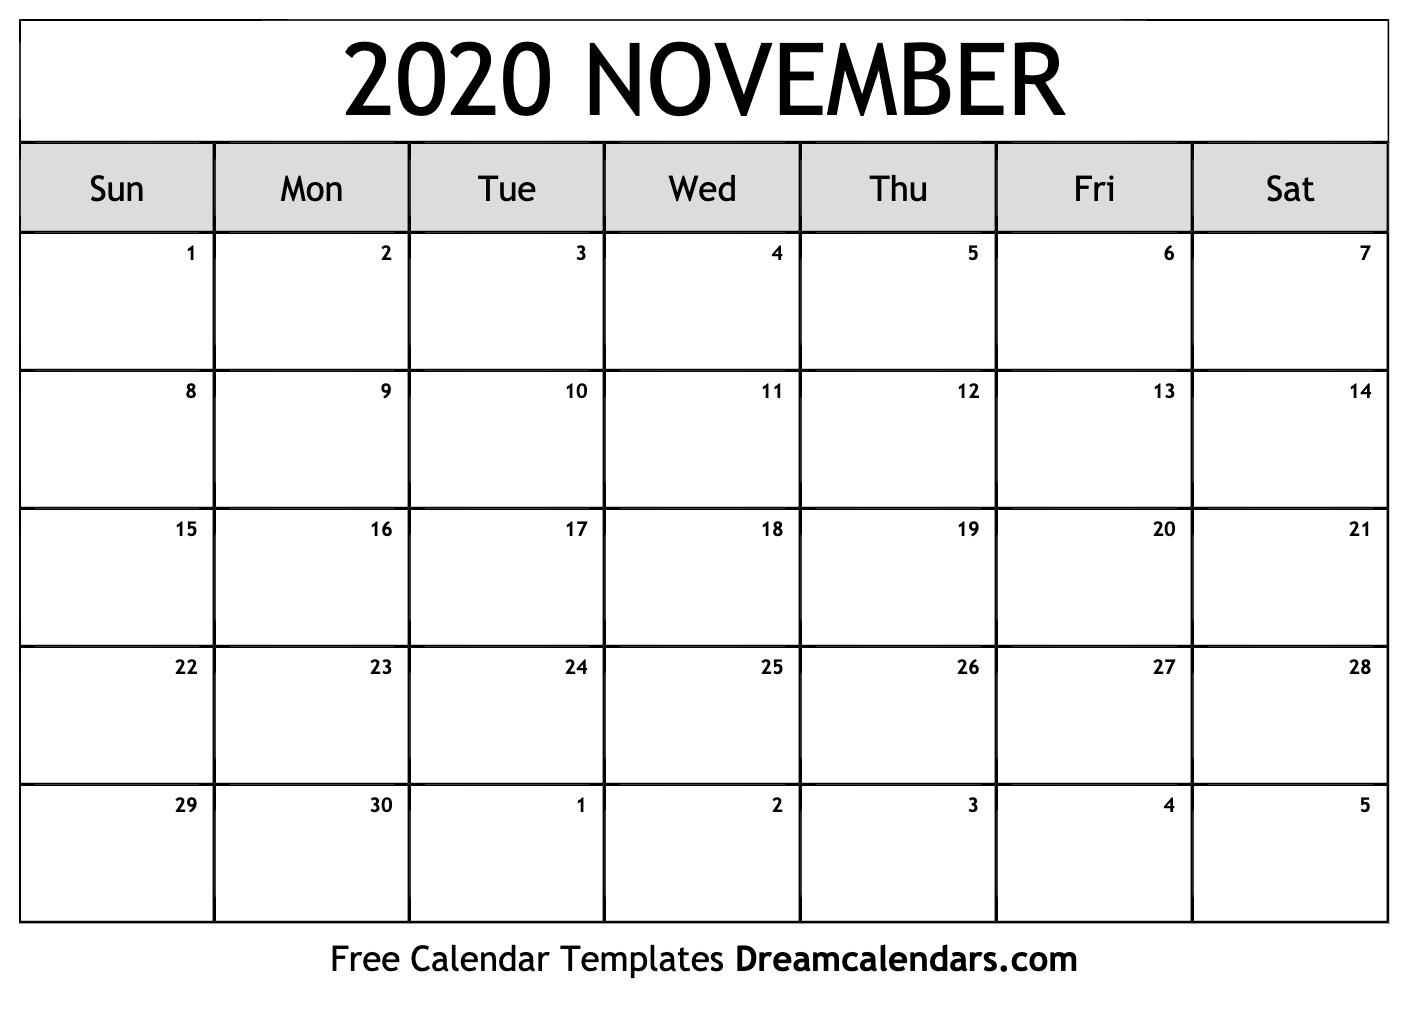 Calendar For Nov 2020 Printable November 2020 Calendar